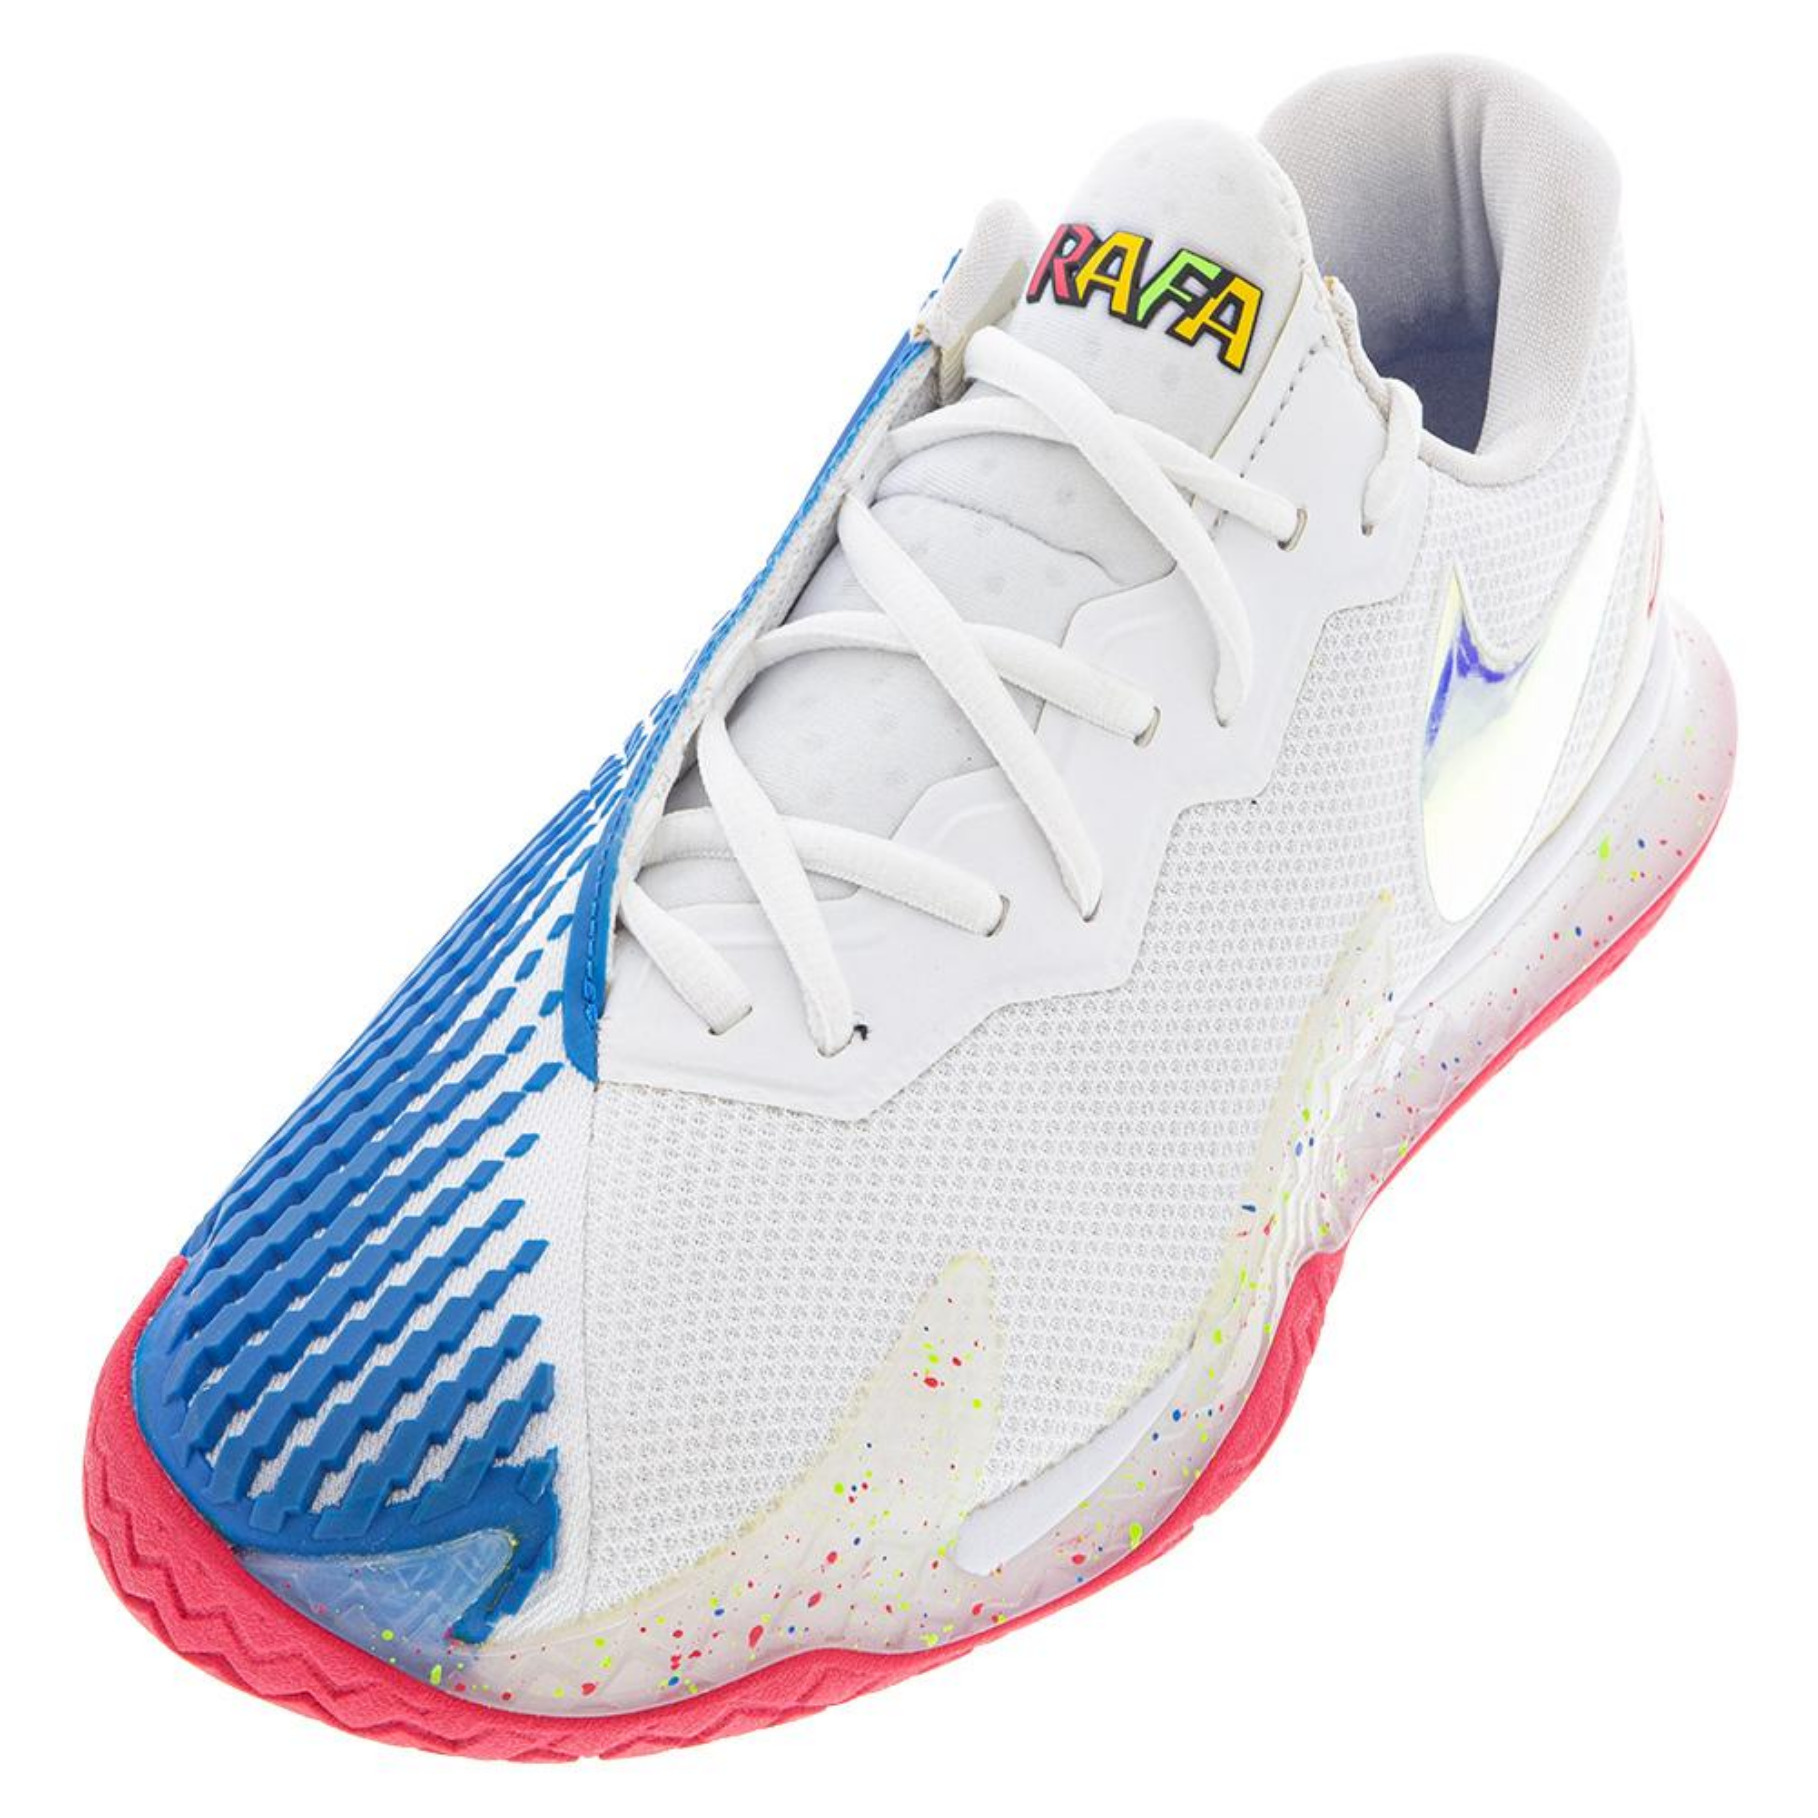 Nike Air Zoom Vapor Cage 4 Men's Shoe - White/Blue